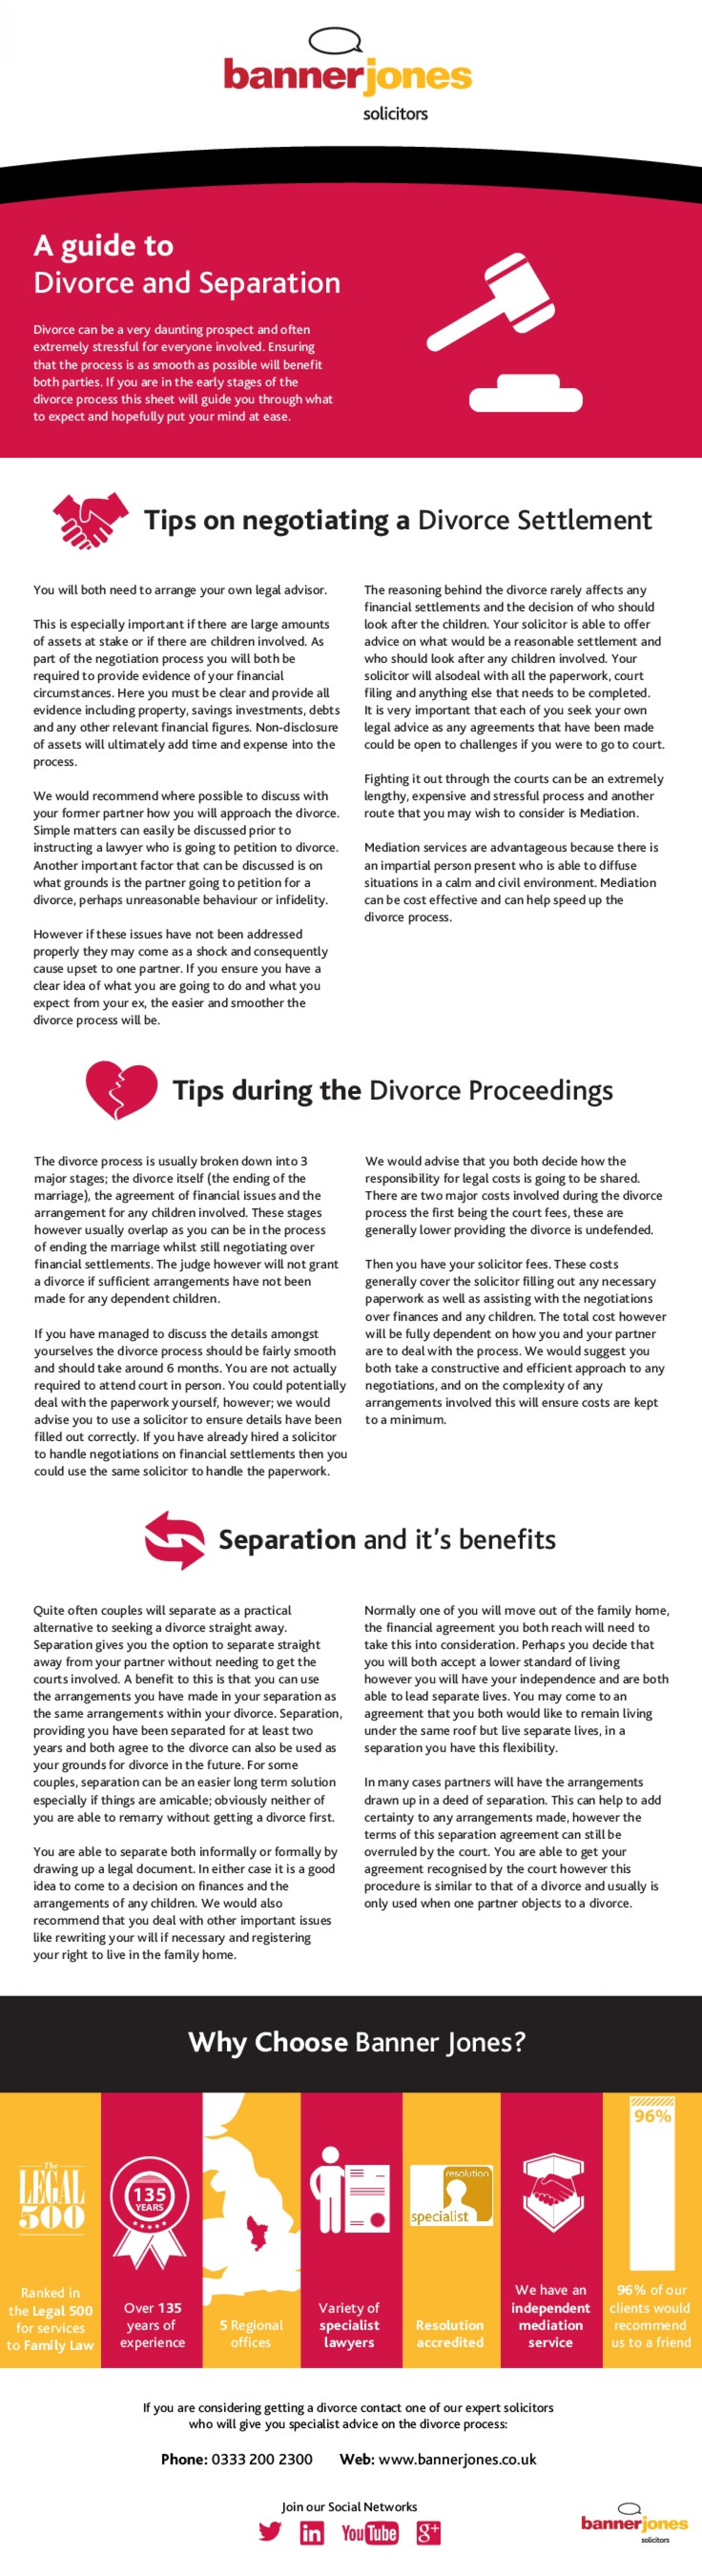 Divorce & Separation - Facts & Top Tips Infographic